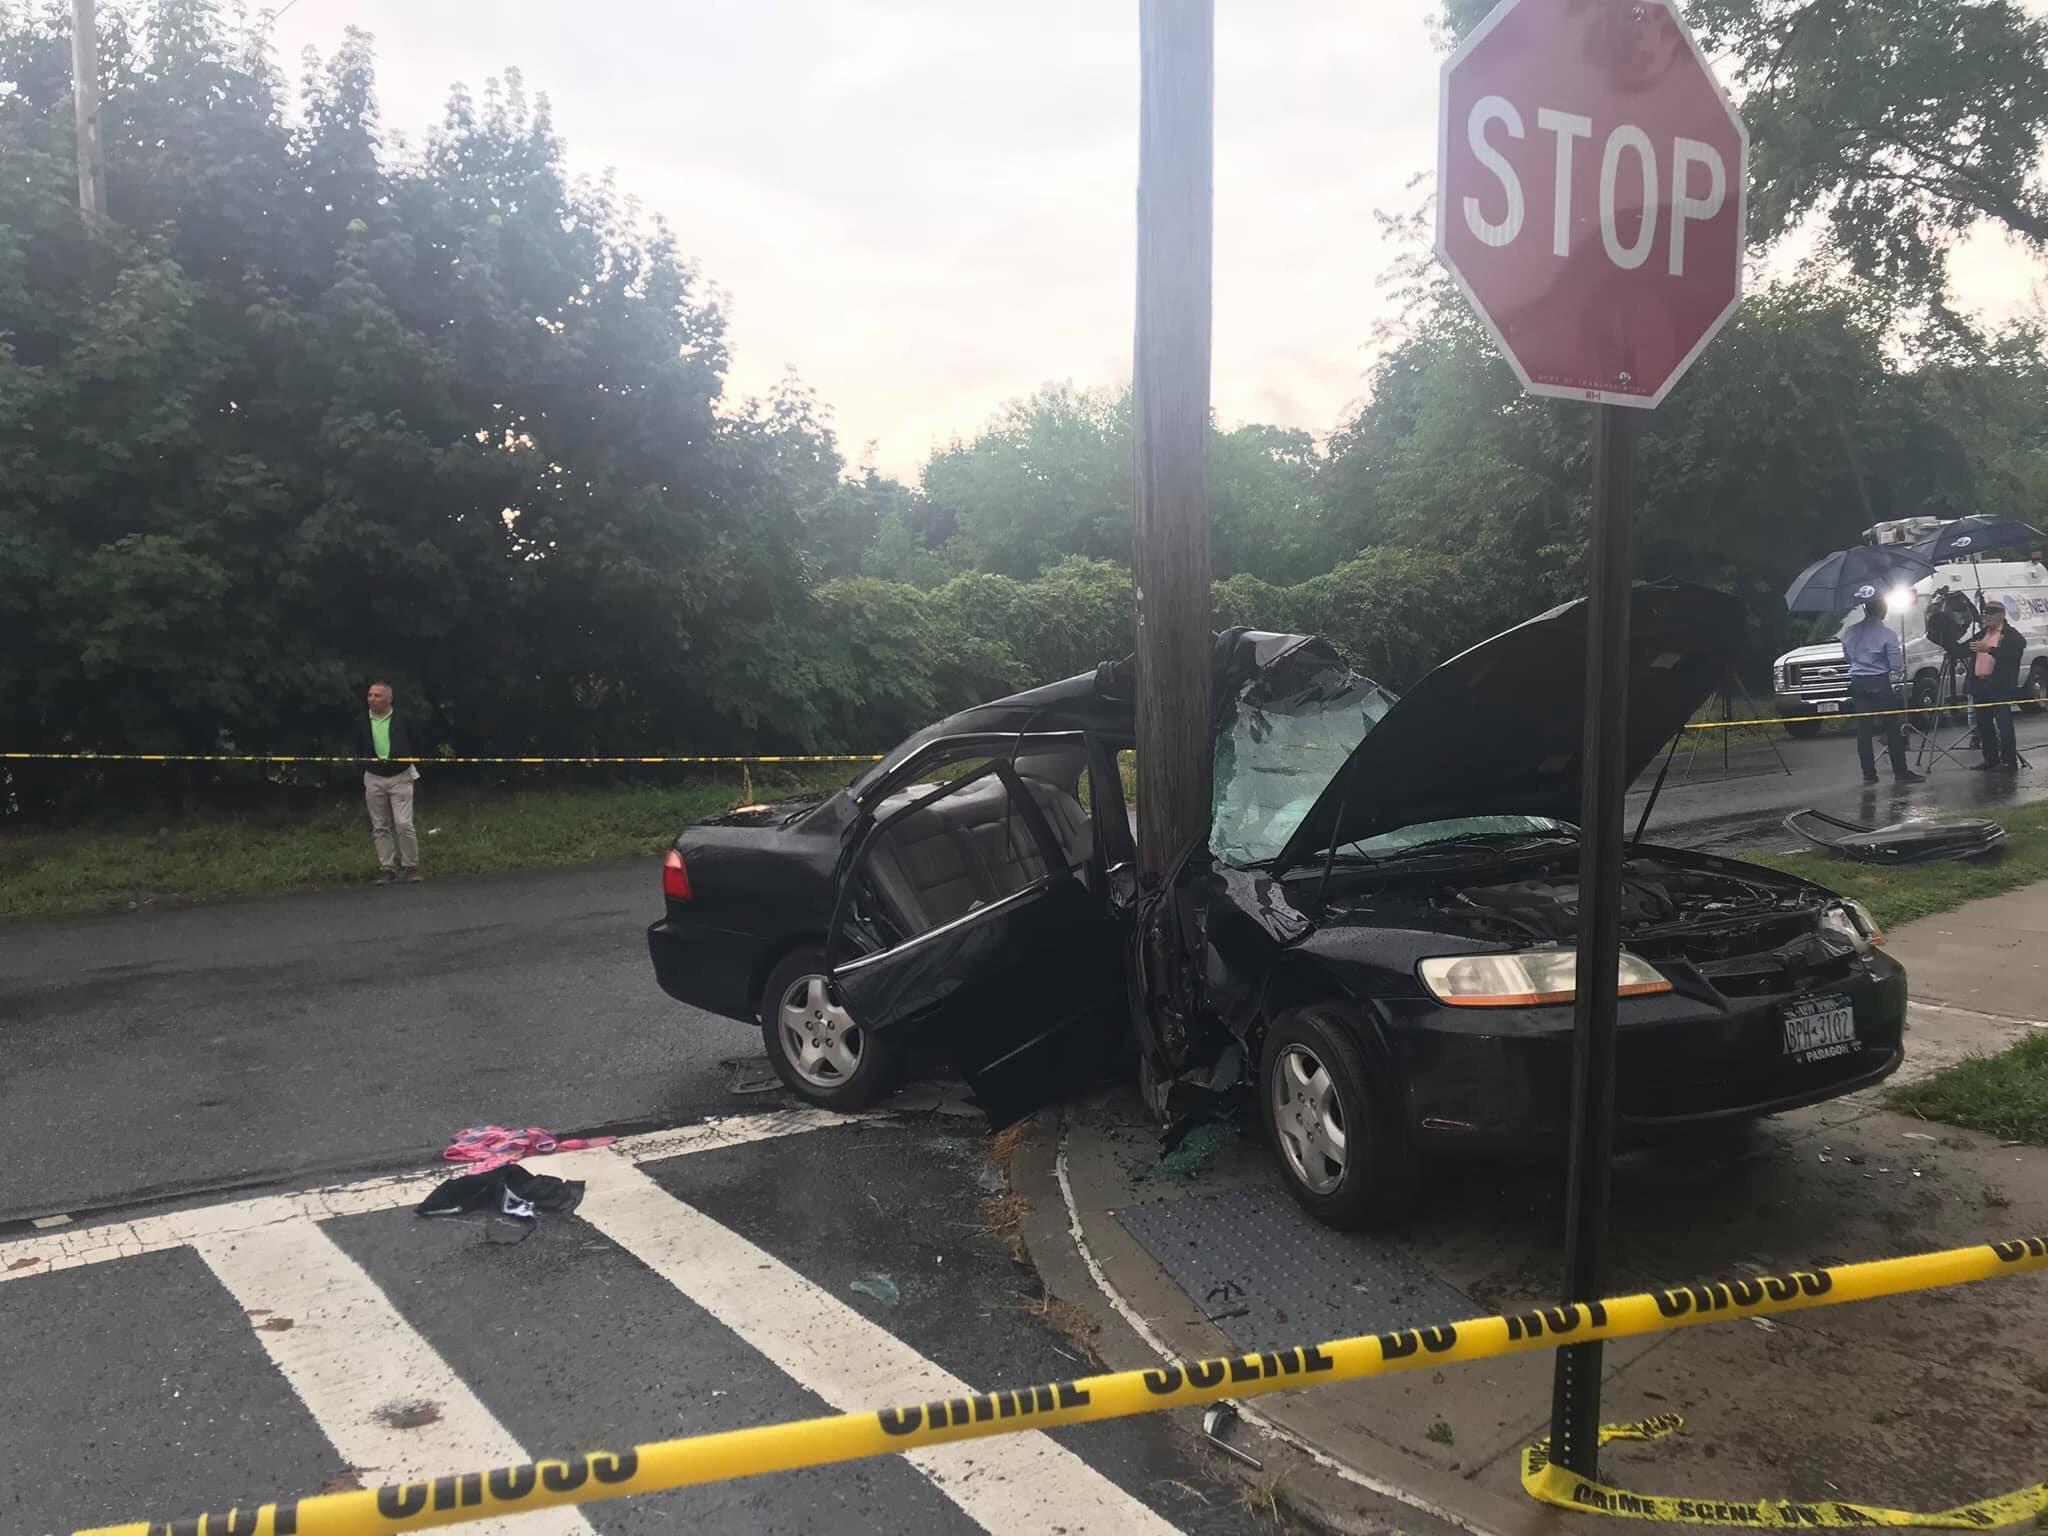 A car in Middle Village with three passengers crashed into a utility pole on Wednesday. Photo via Councilmember Robert Holden.